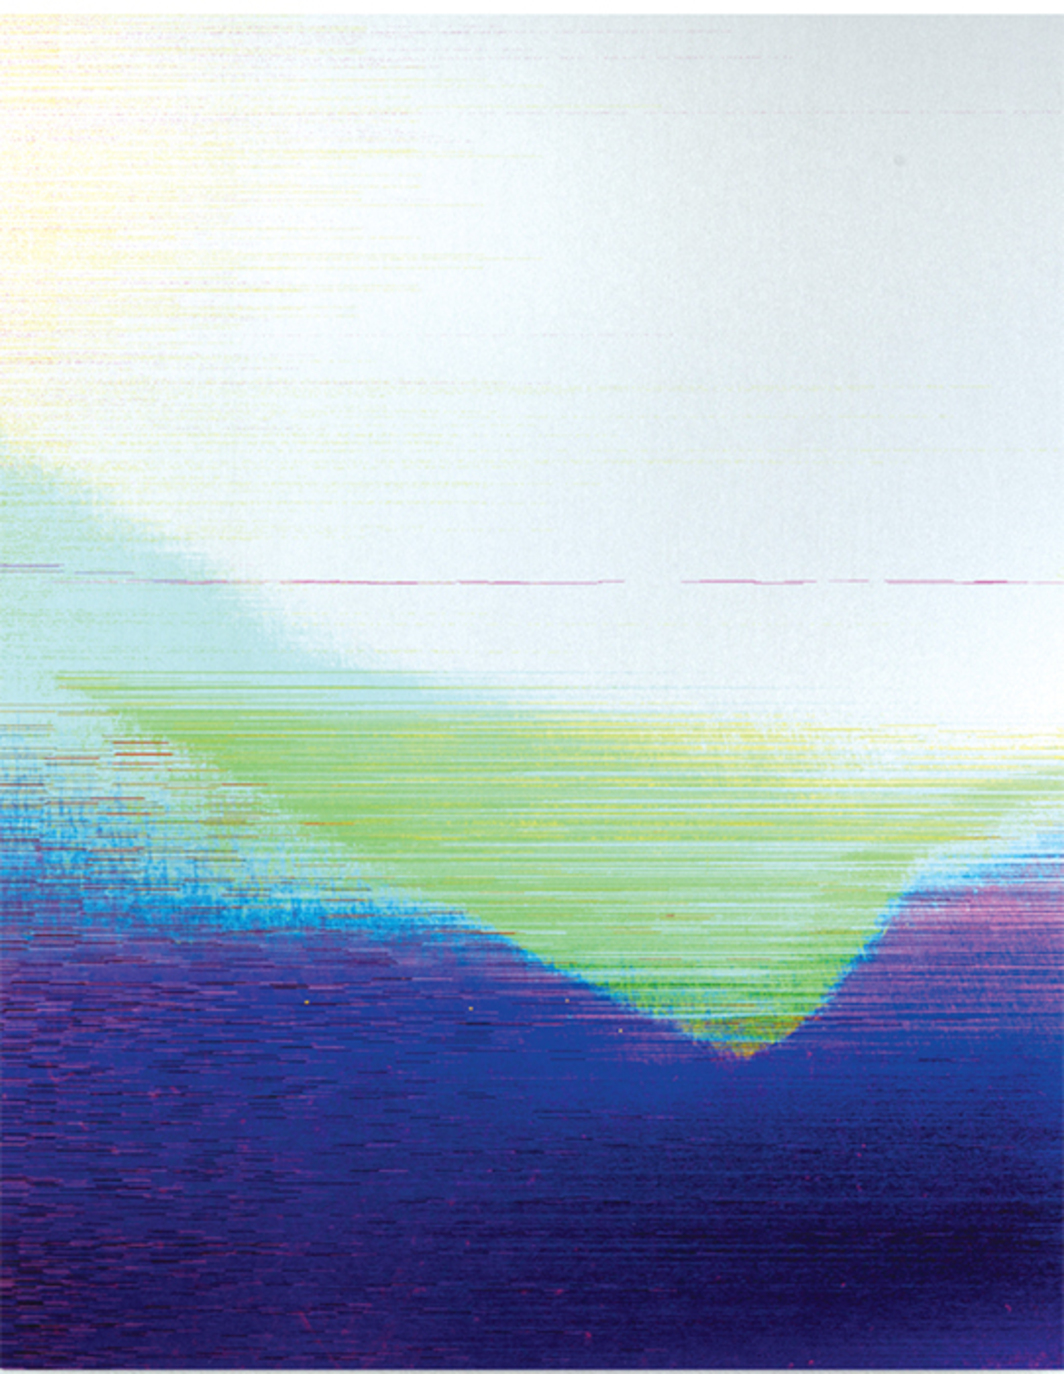 "James Hoff, Skywiper No. 7, 2014, ChromaLuxe transfer on aluminum, 30 × 24""."